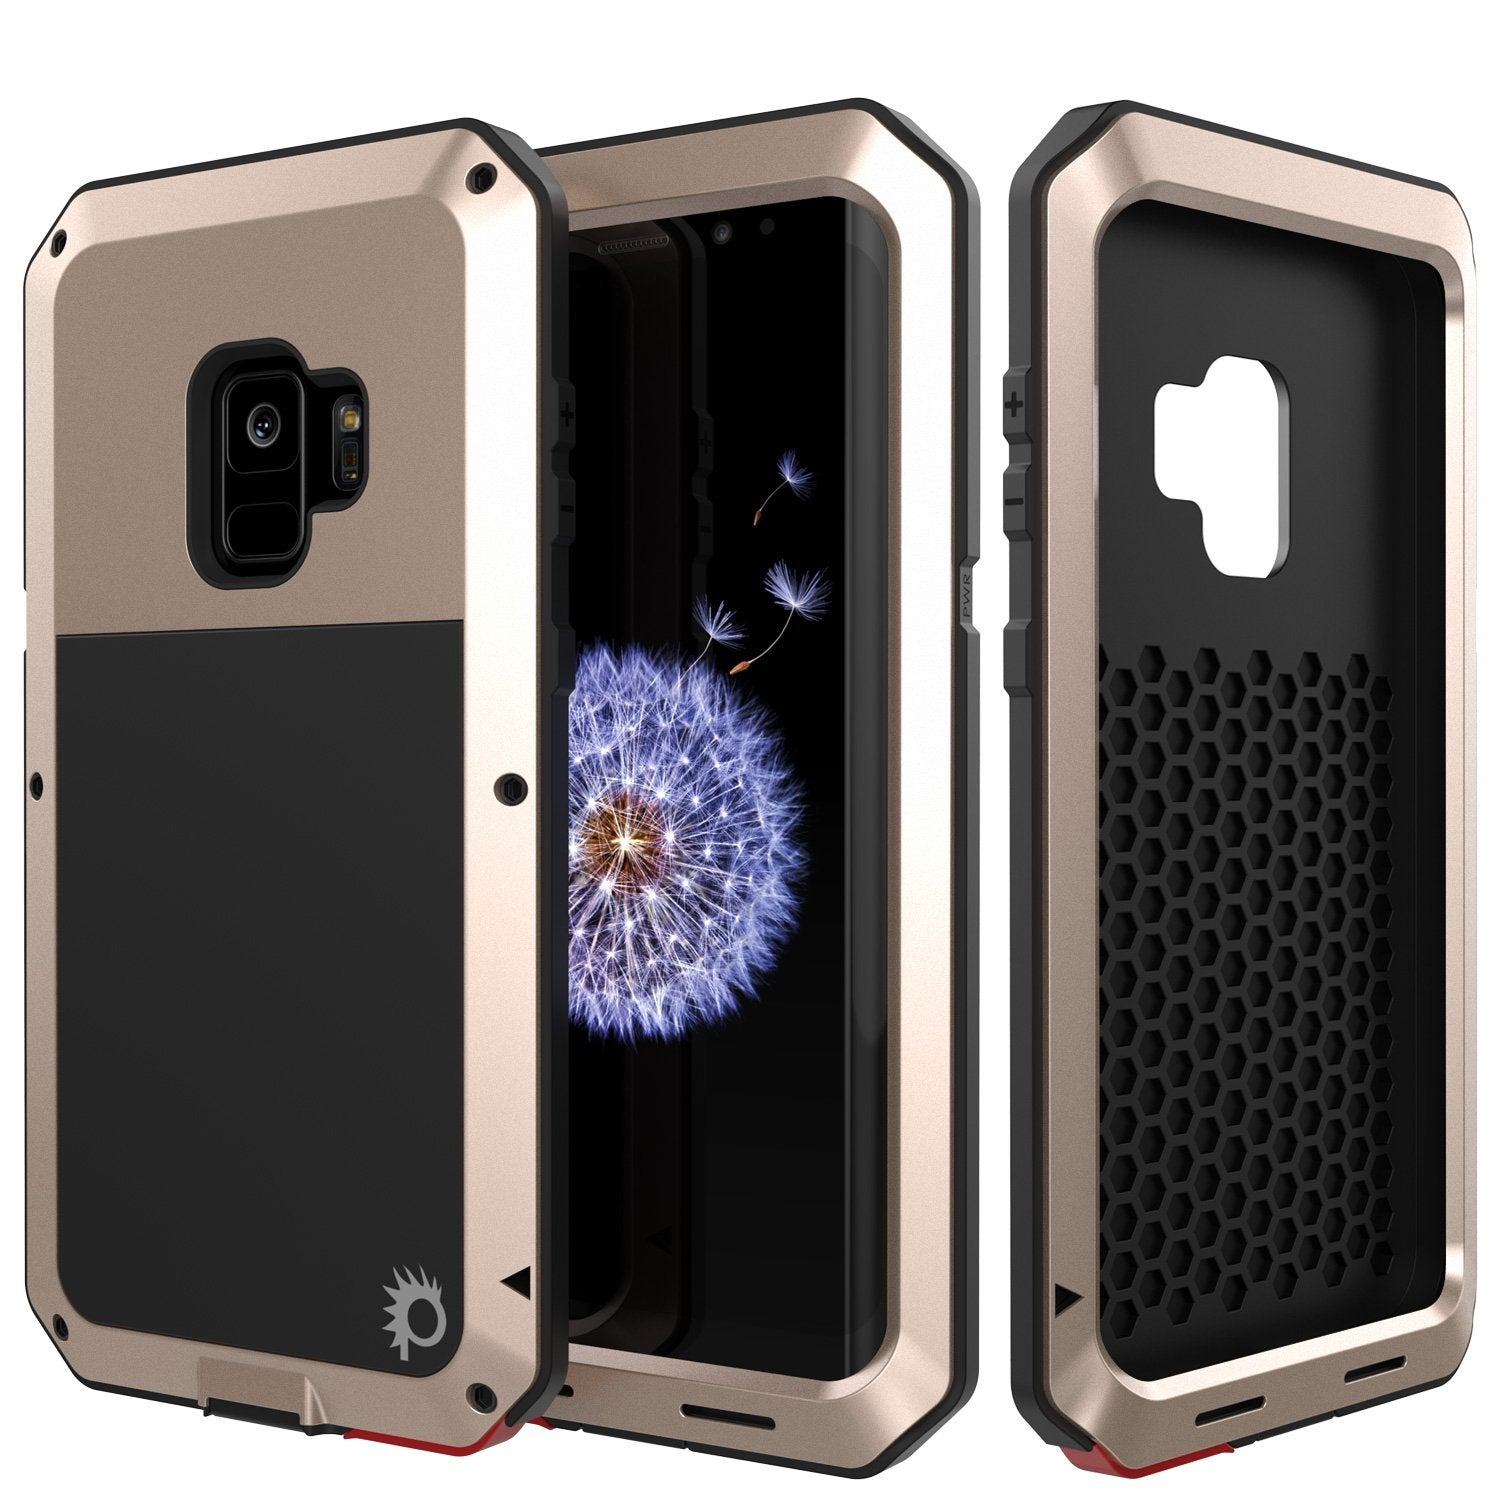 Galaxy S9 Metal Case, Heavy Duty Military Grade Rugged case [Gold]